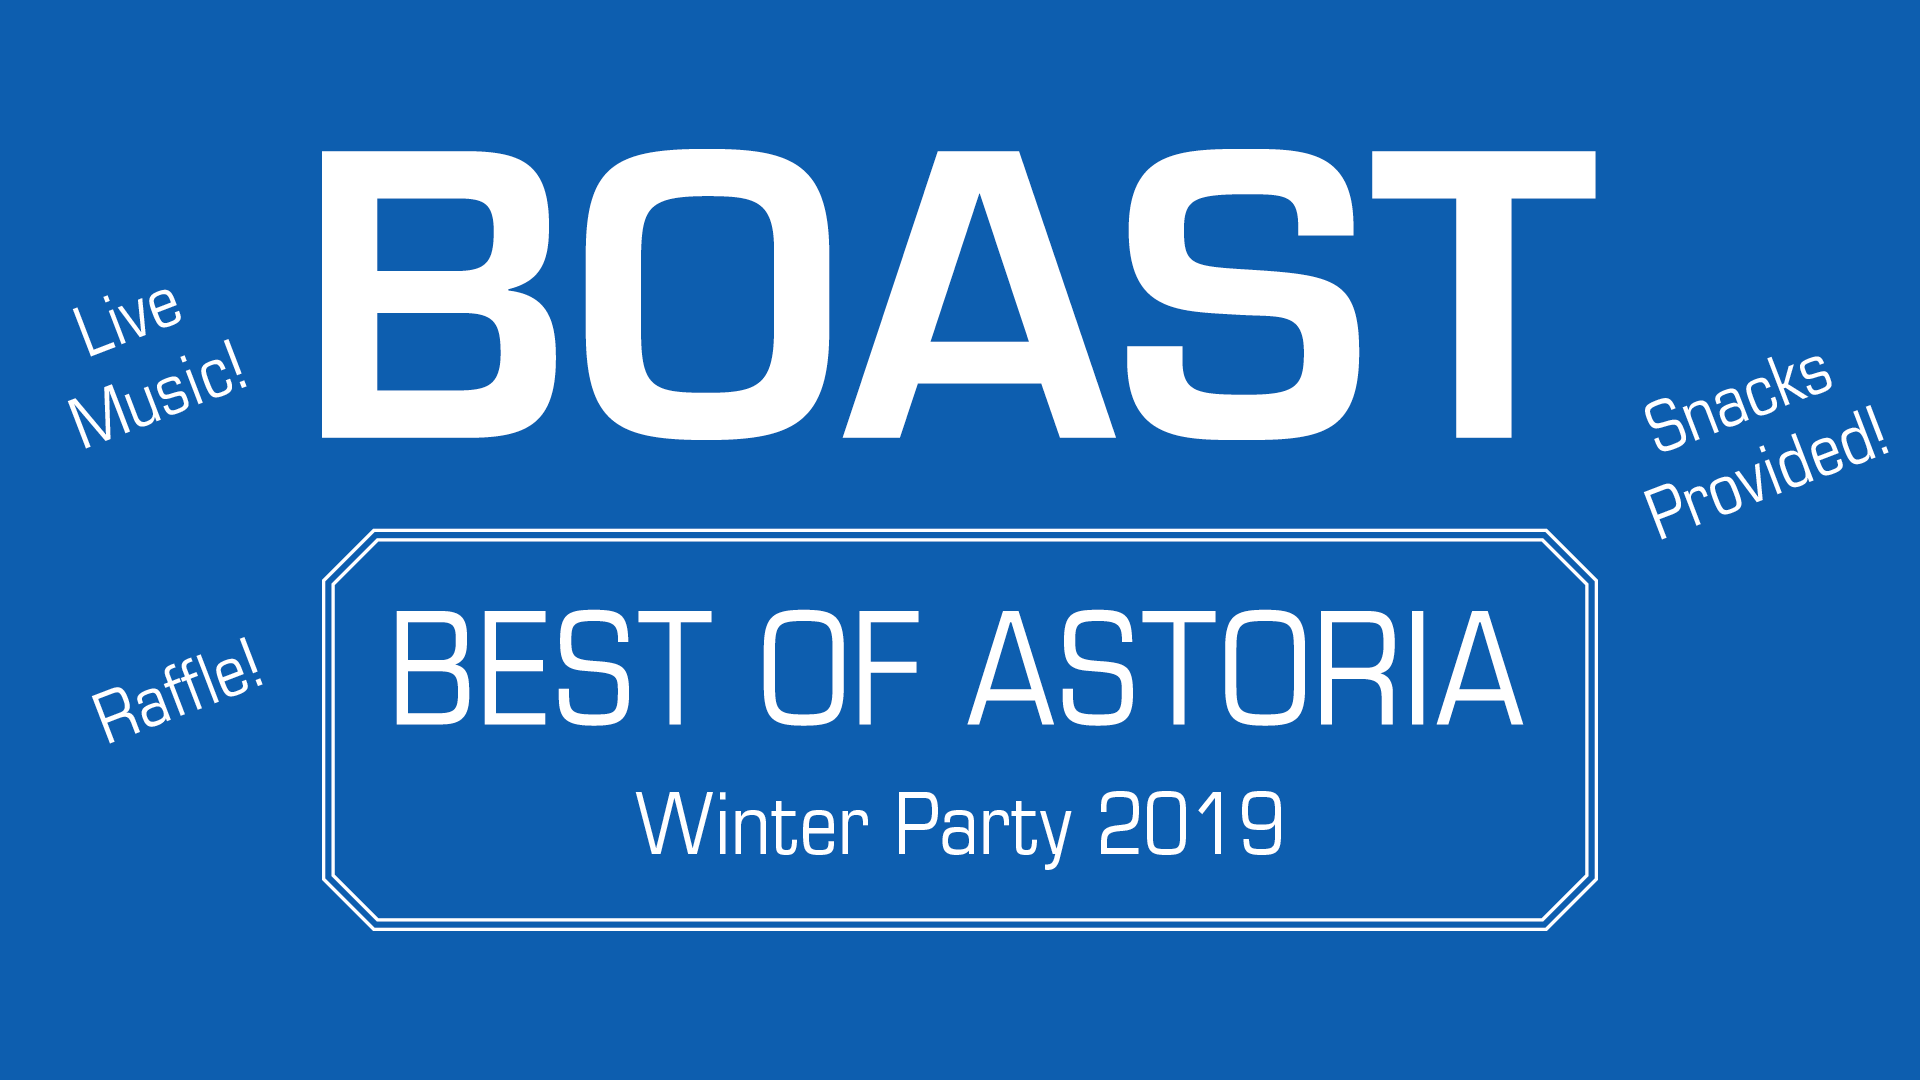 BOAST-winter2019-party-logos2b